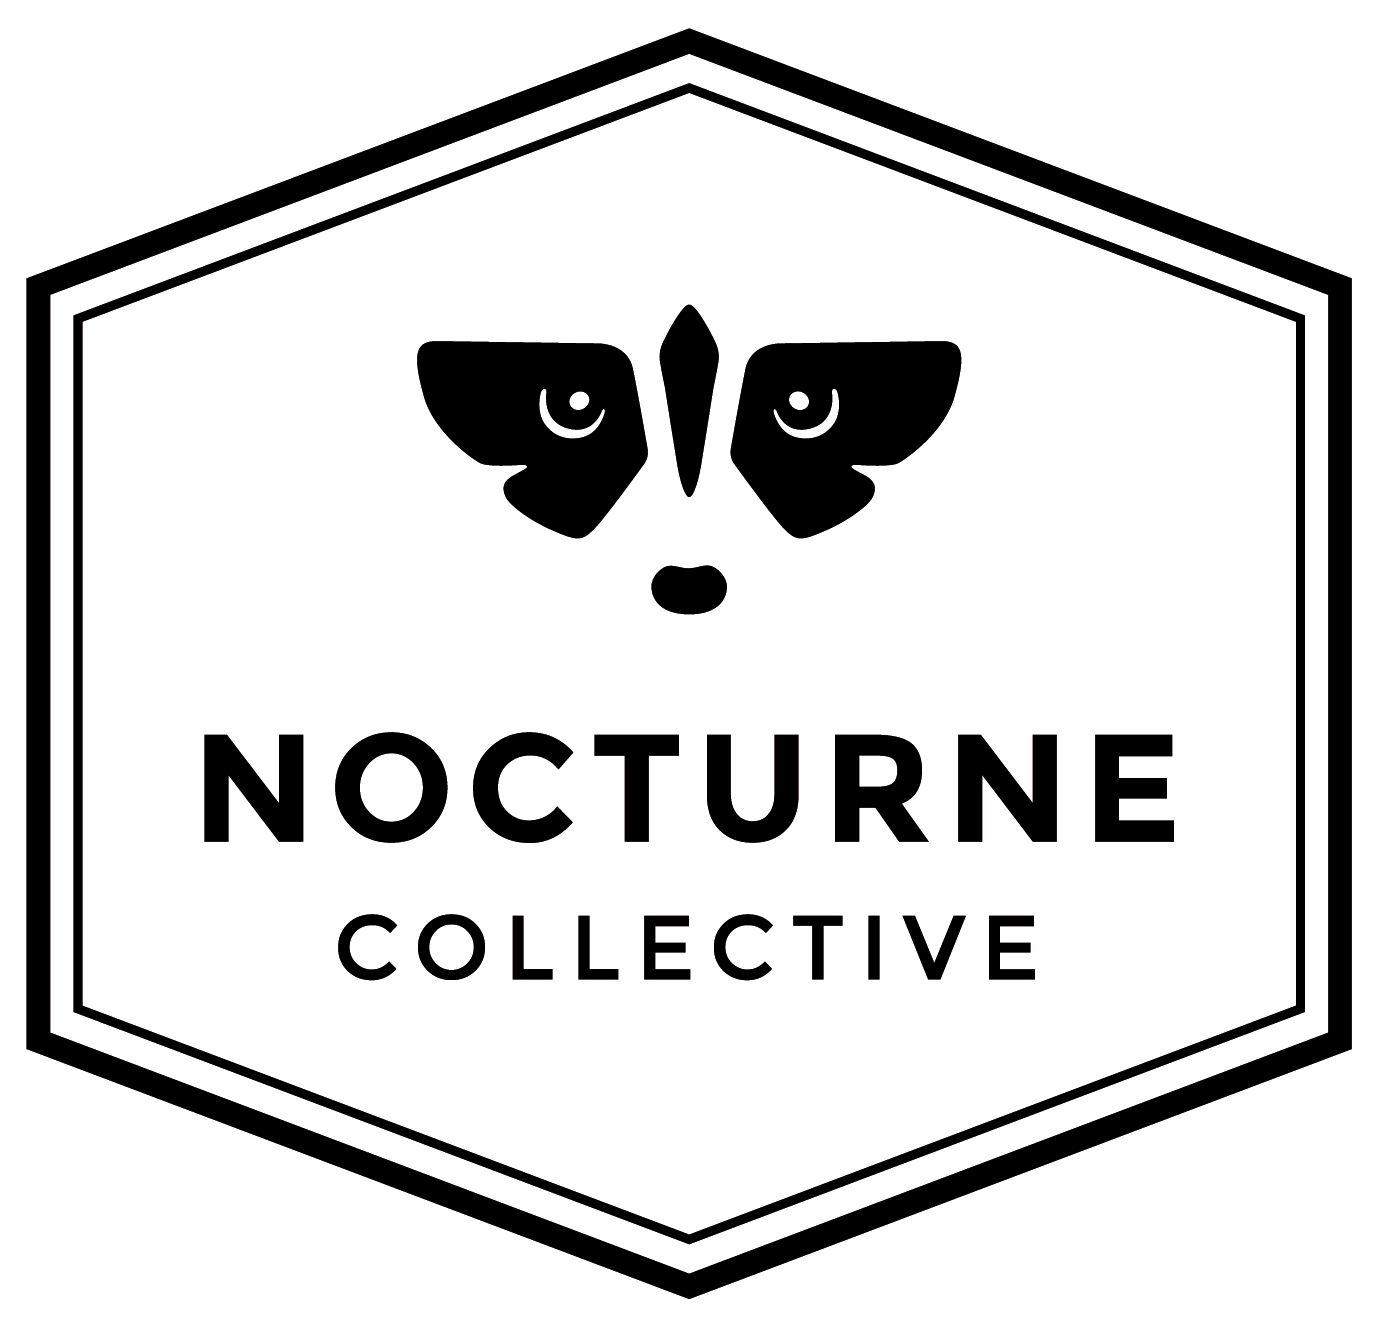 Nocturne Collective